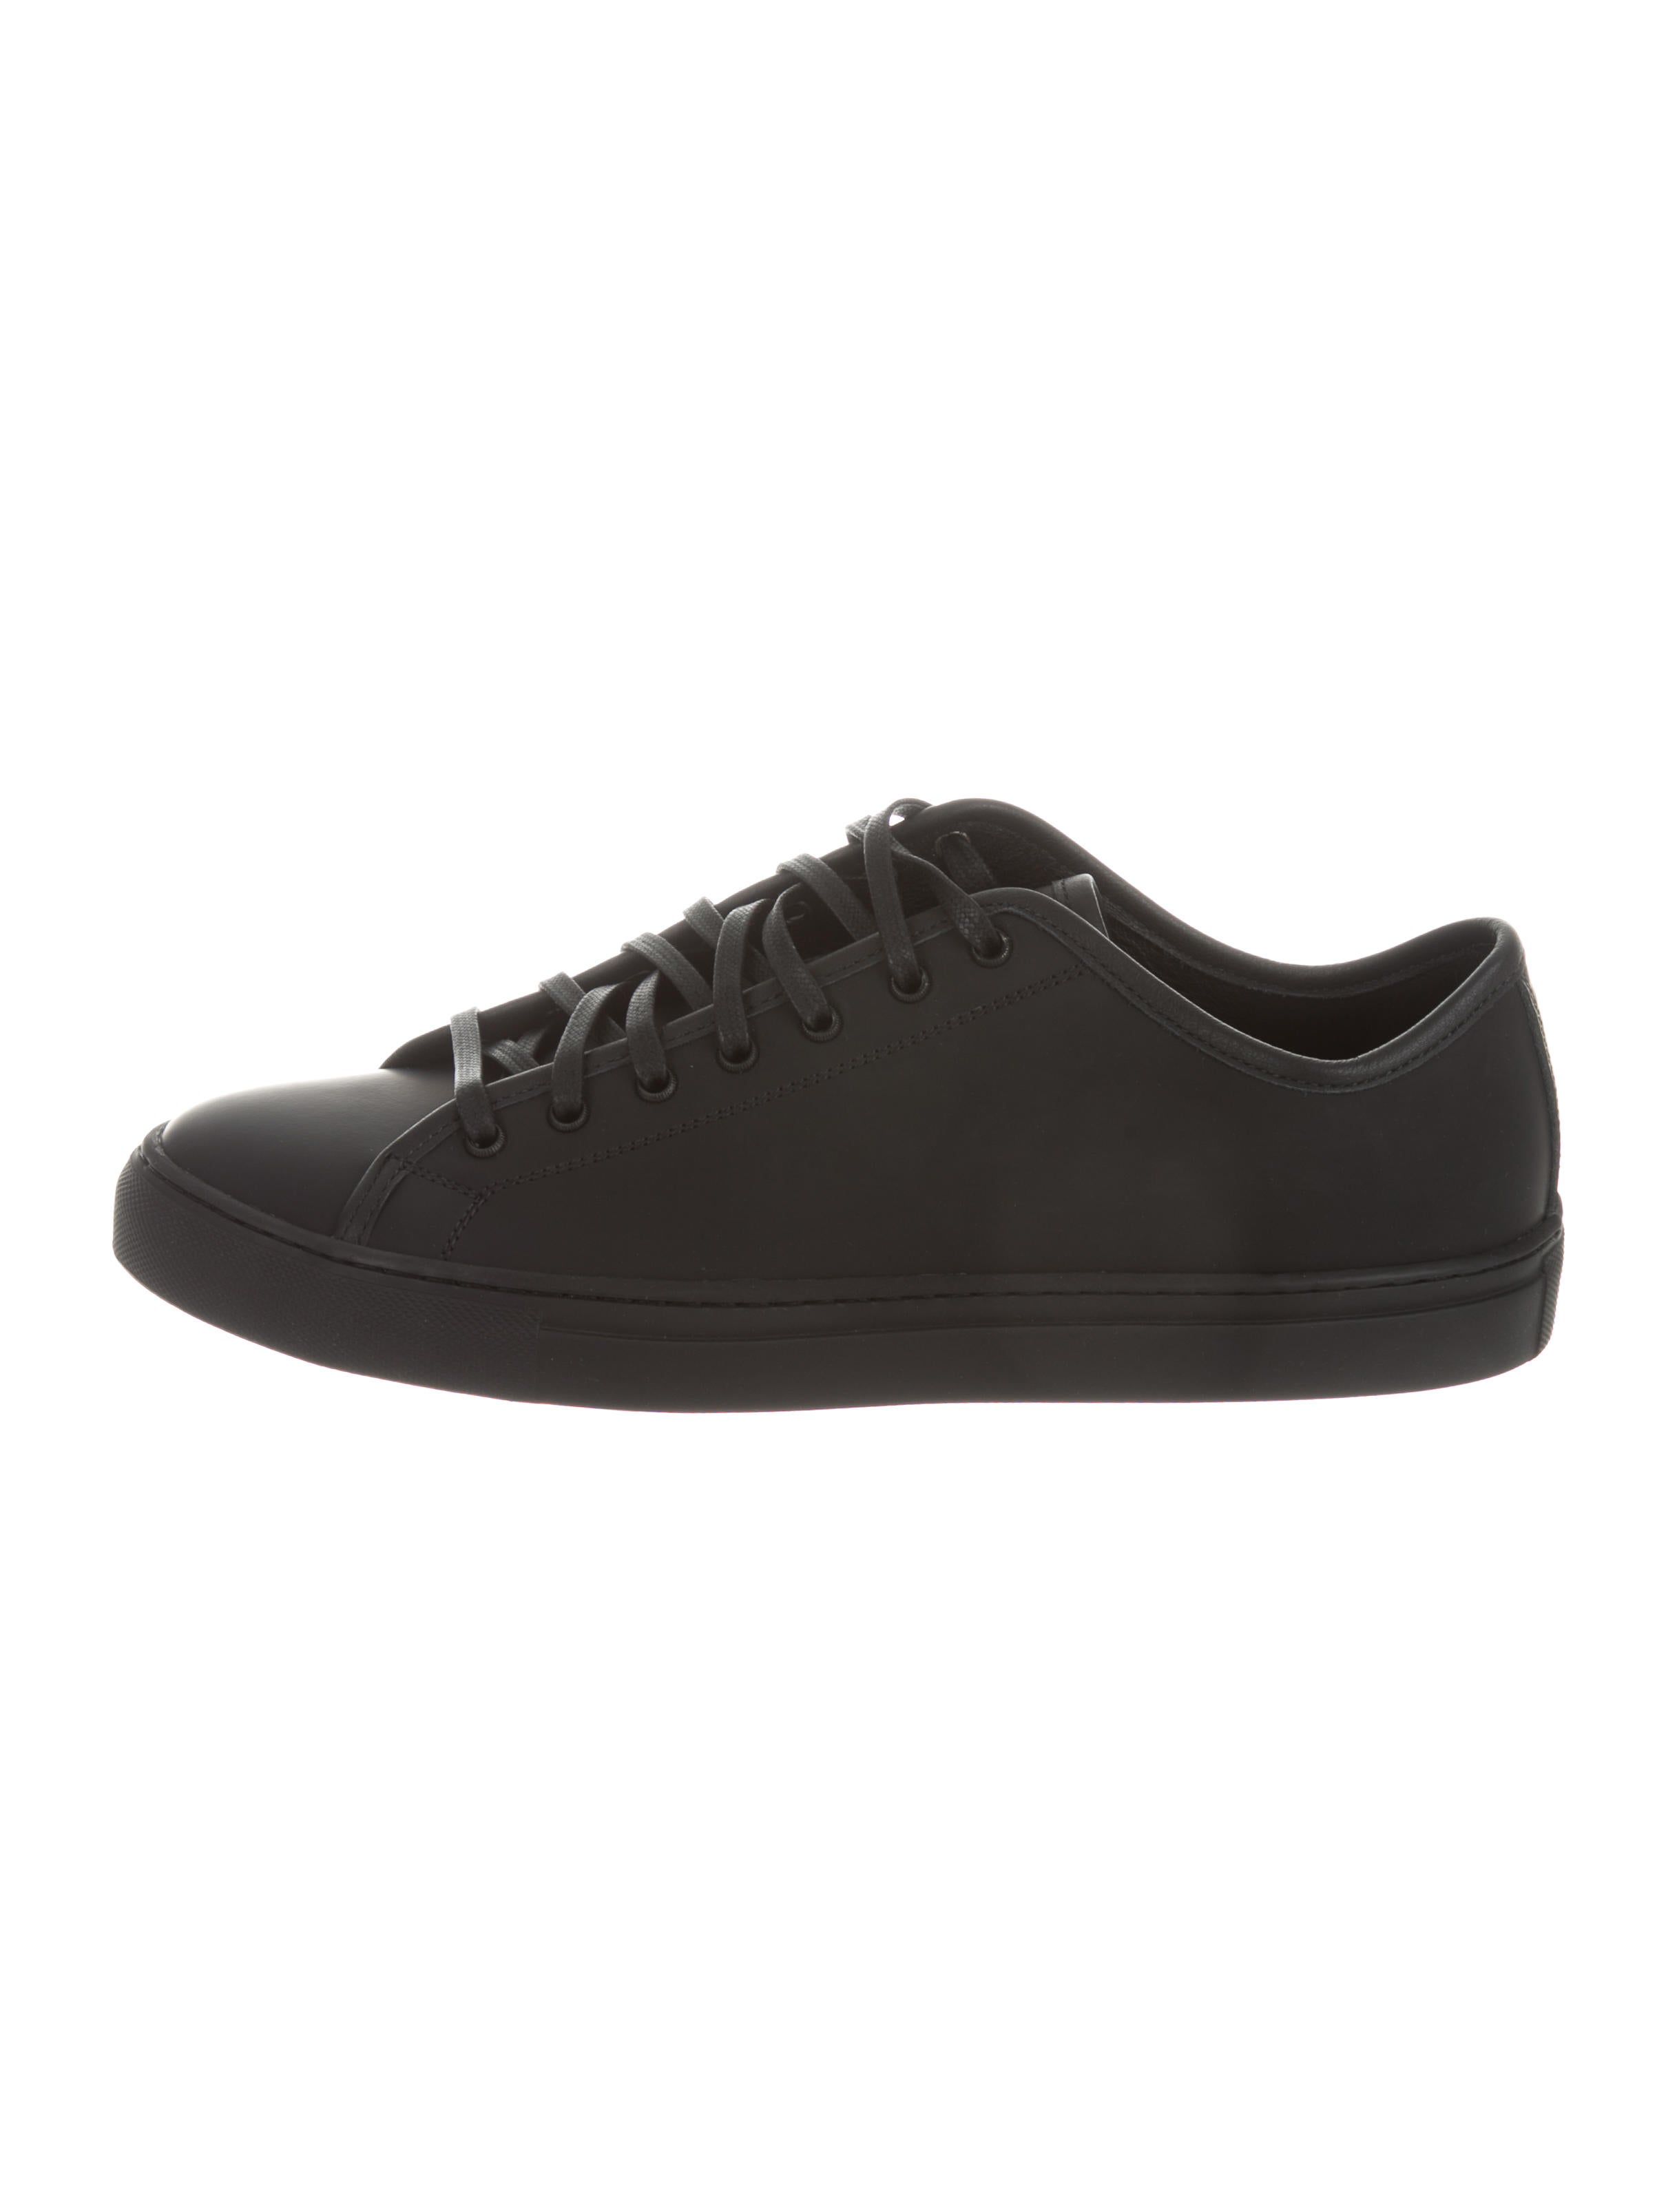 Diemme Leather Low-Top Sneakers w/ Tags footlocker pictures buy cheap latest outlet release dates SGRtz